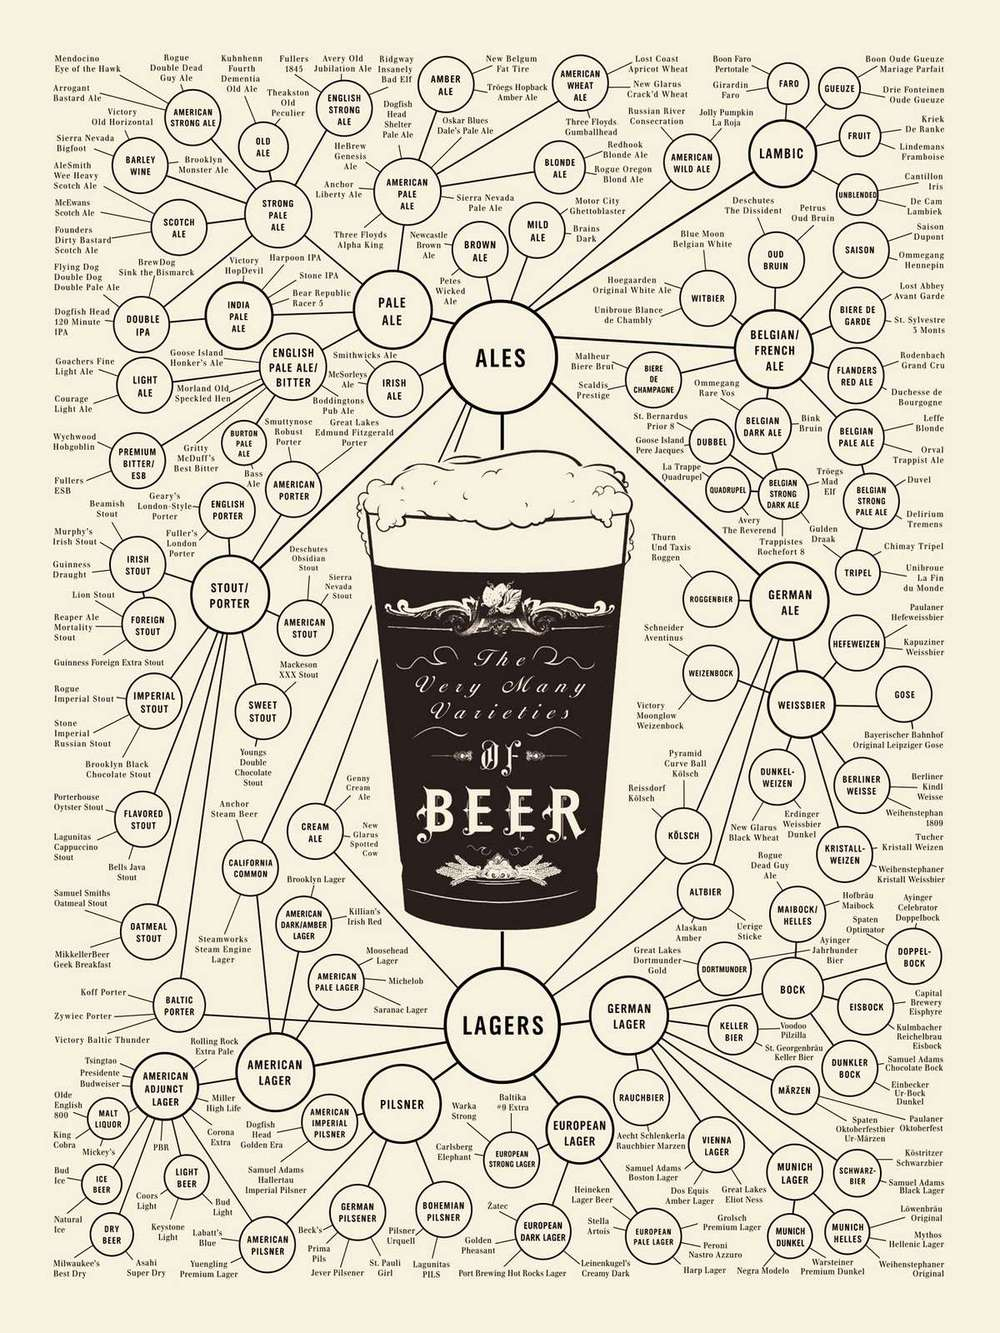 The world of Beer, from Chart Pop Lab